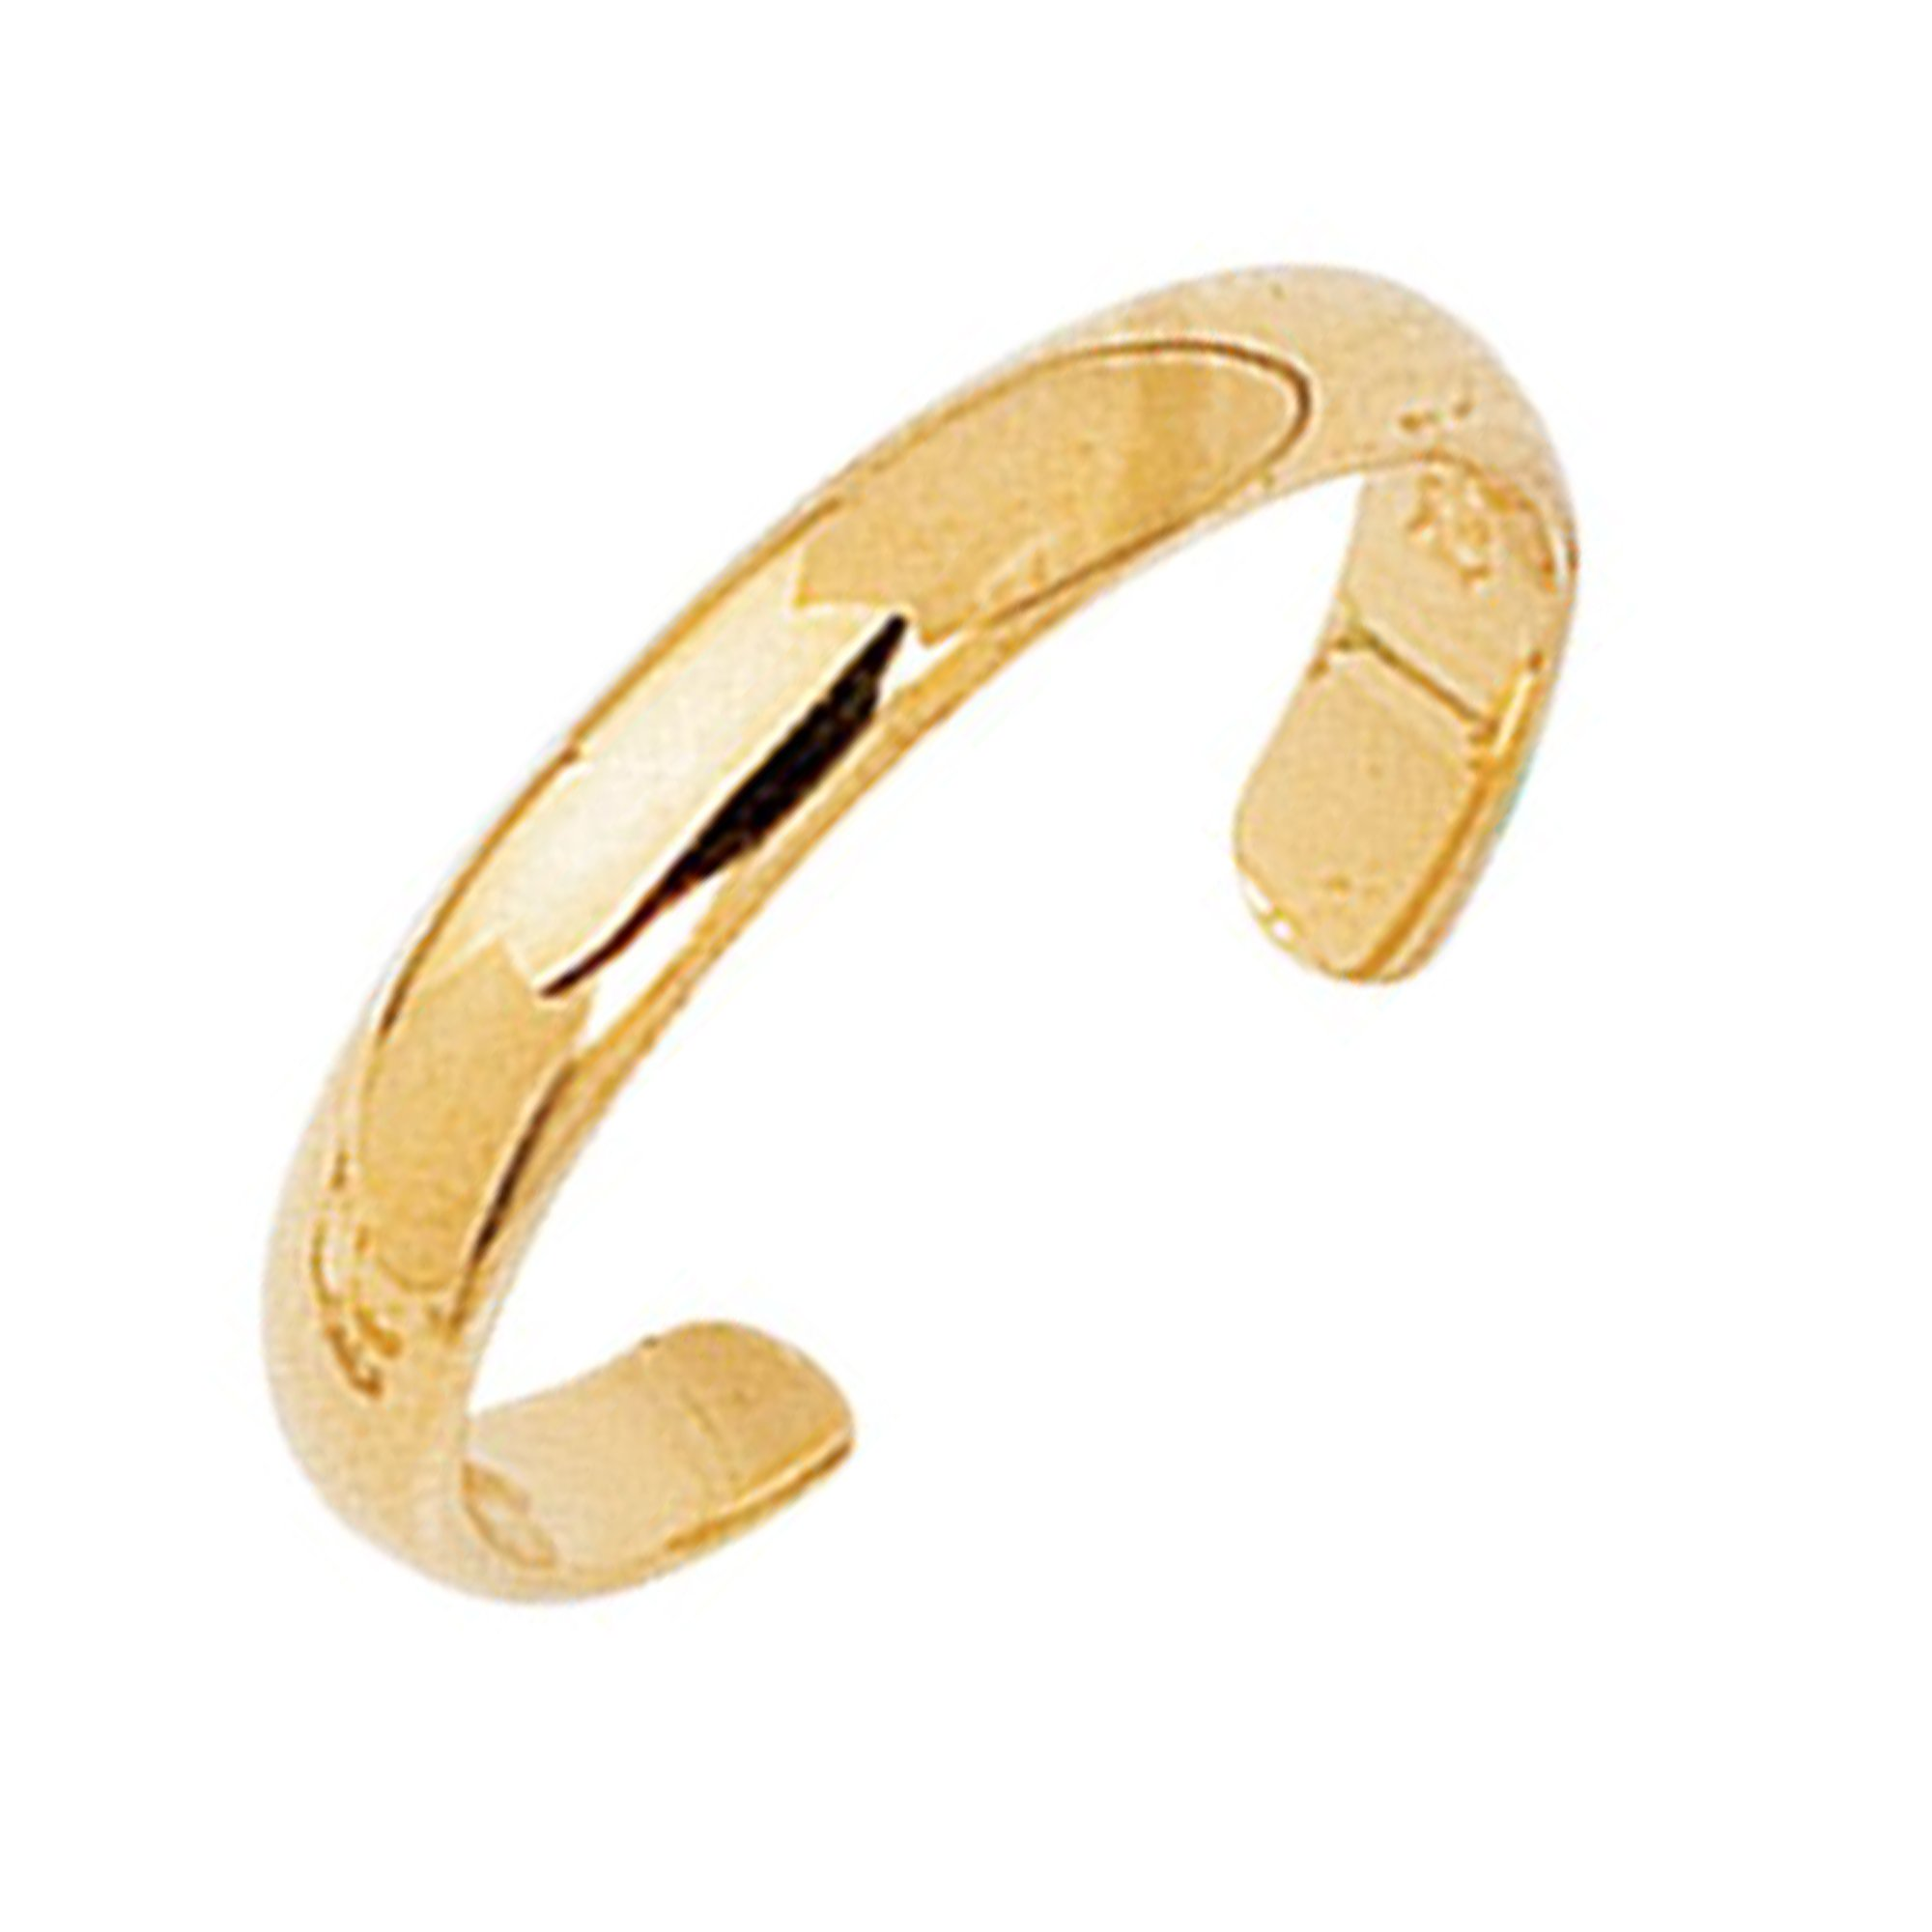 Ritastephens 14k Yellow Gold Shiny High Polished Plain Band Toe Ring Adjustable by Ritastephens